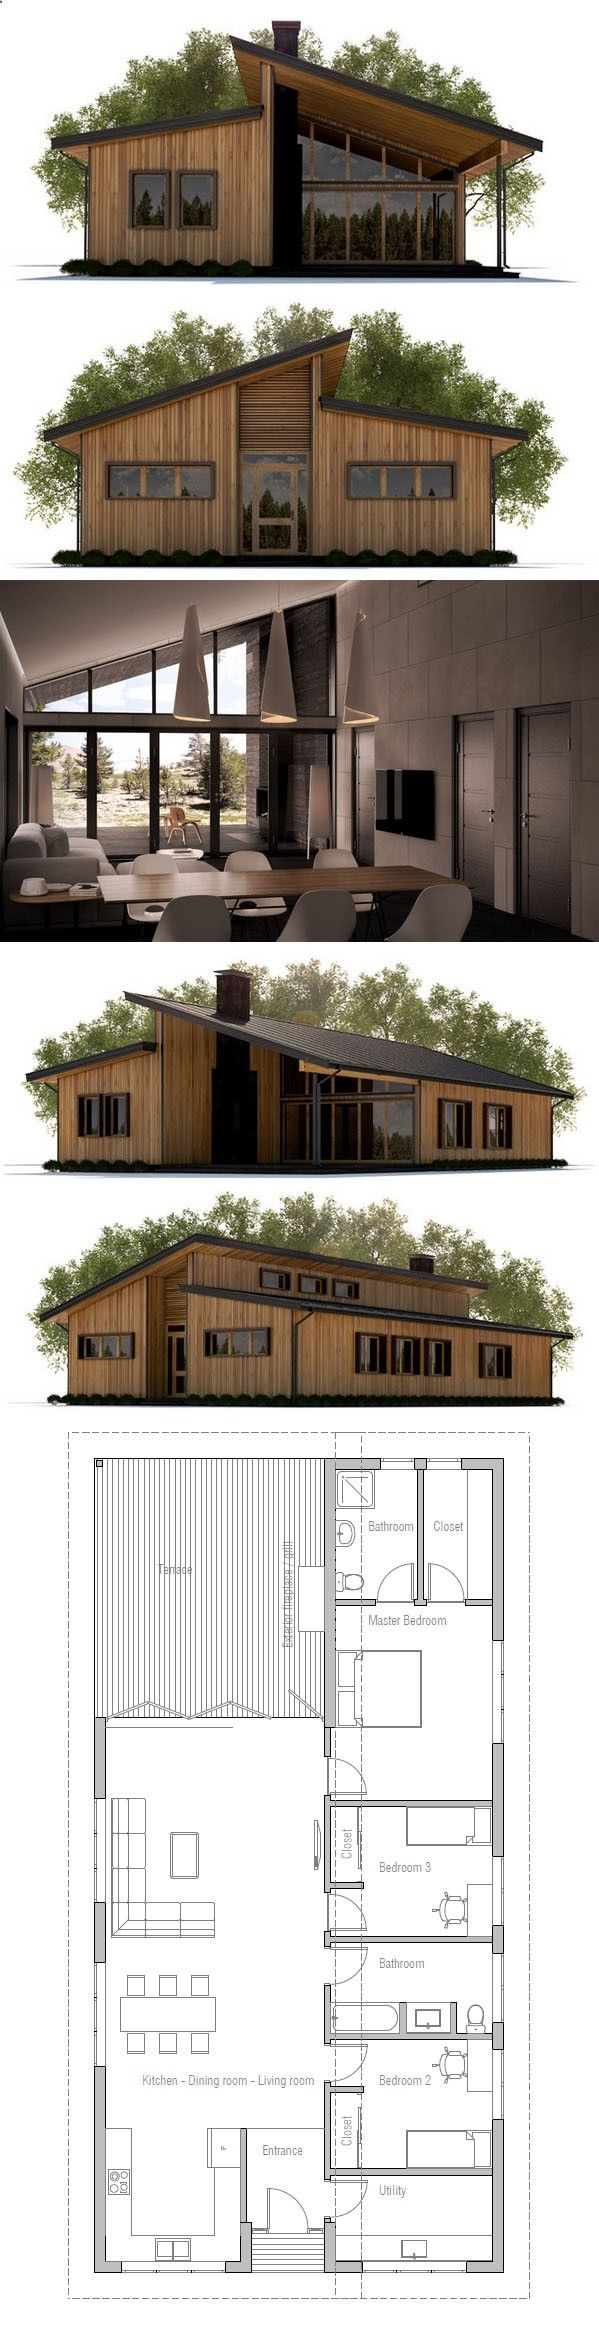 Container house small plan who else wants simple step by also ramazan dingec ramazandinge on pinterest rh